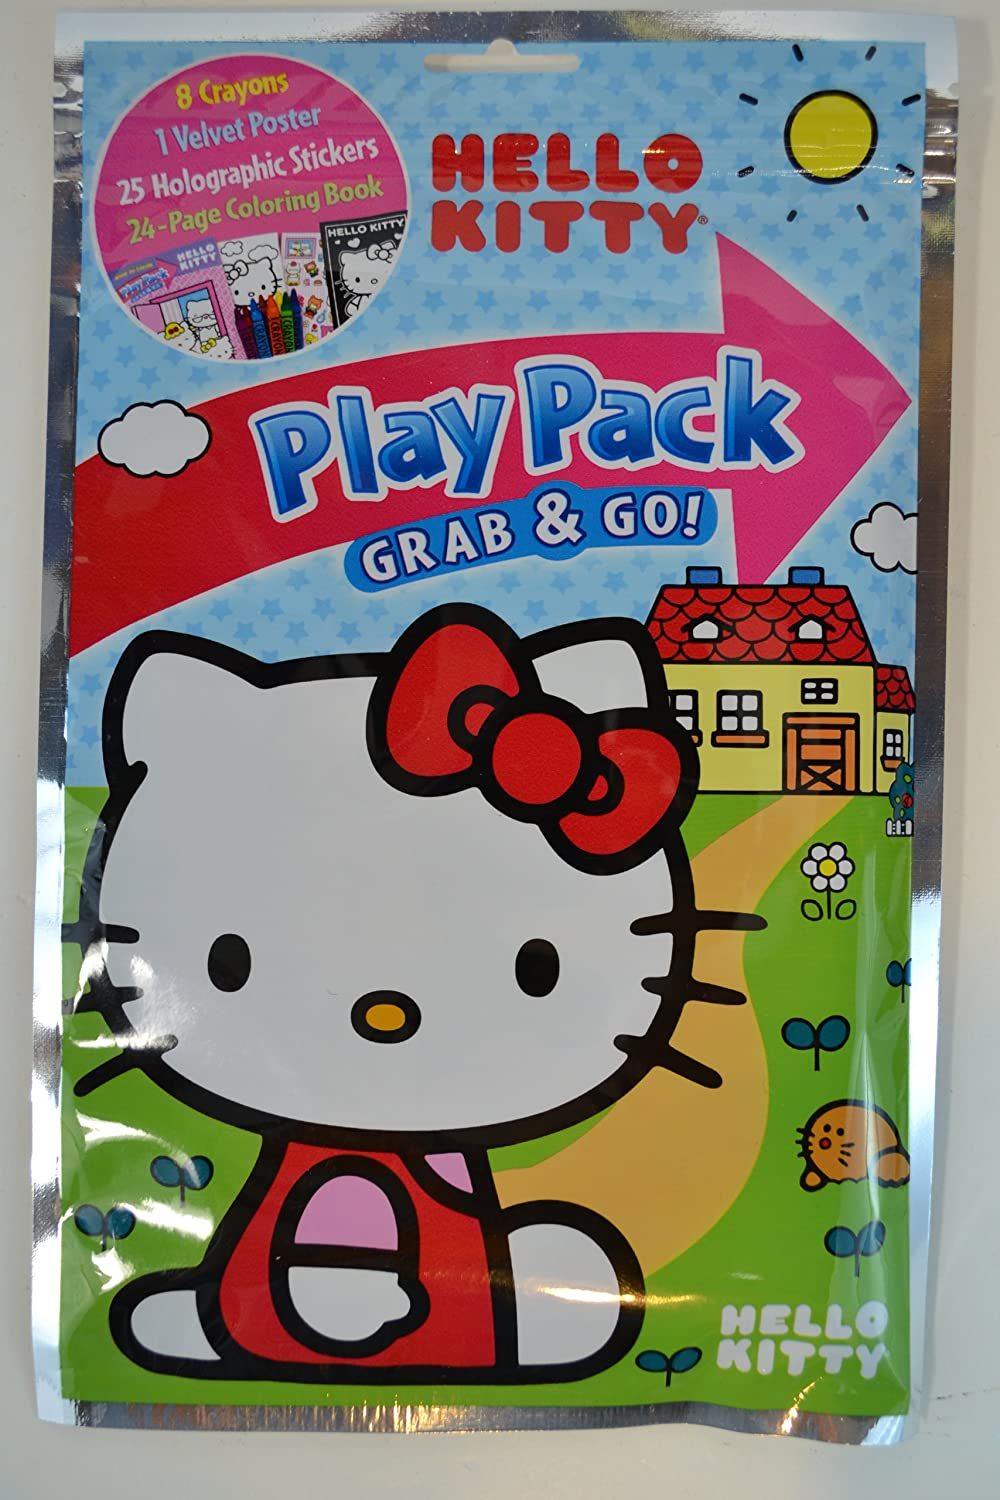 Stickers Poster Hello Kitty Play Pack Grab /& Go Crayons Coloring Book Dalmation Press